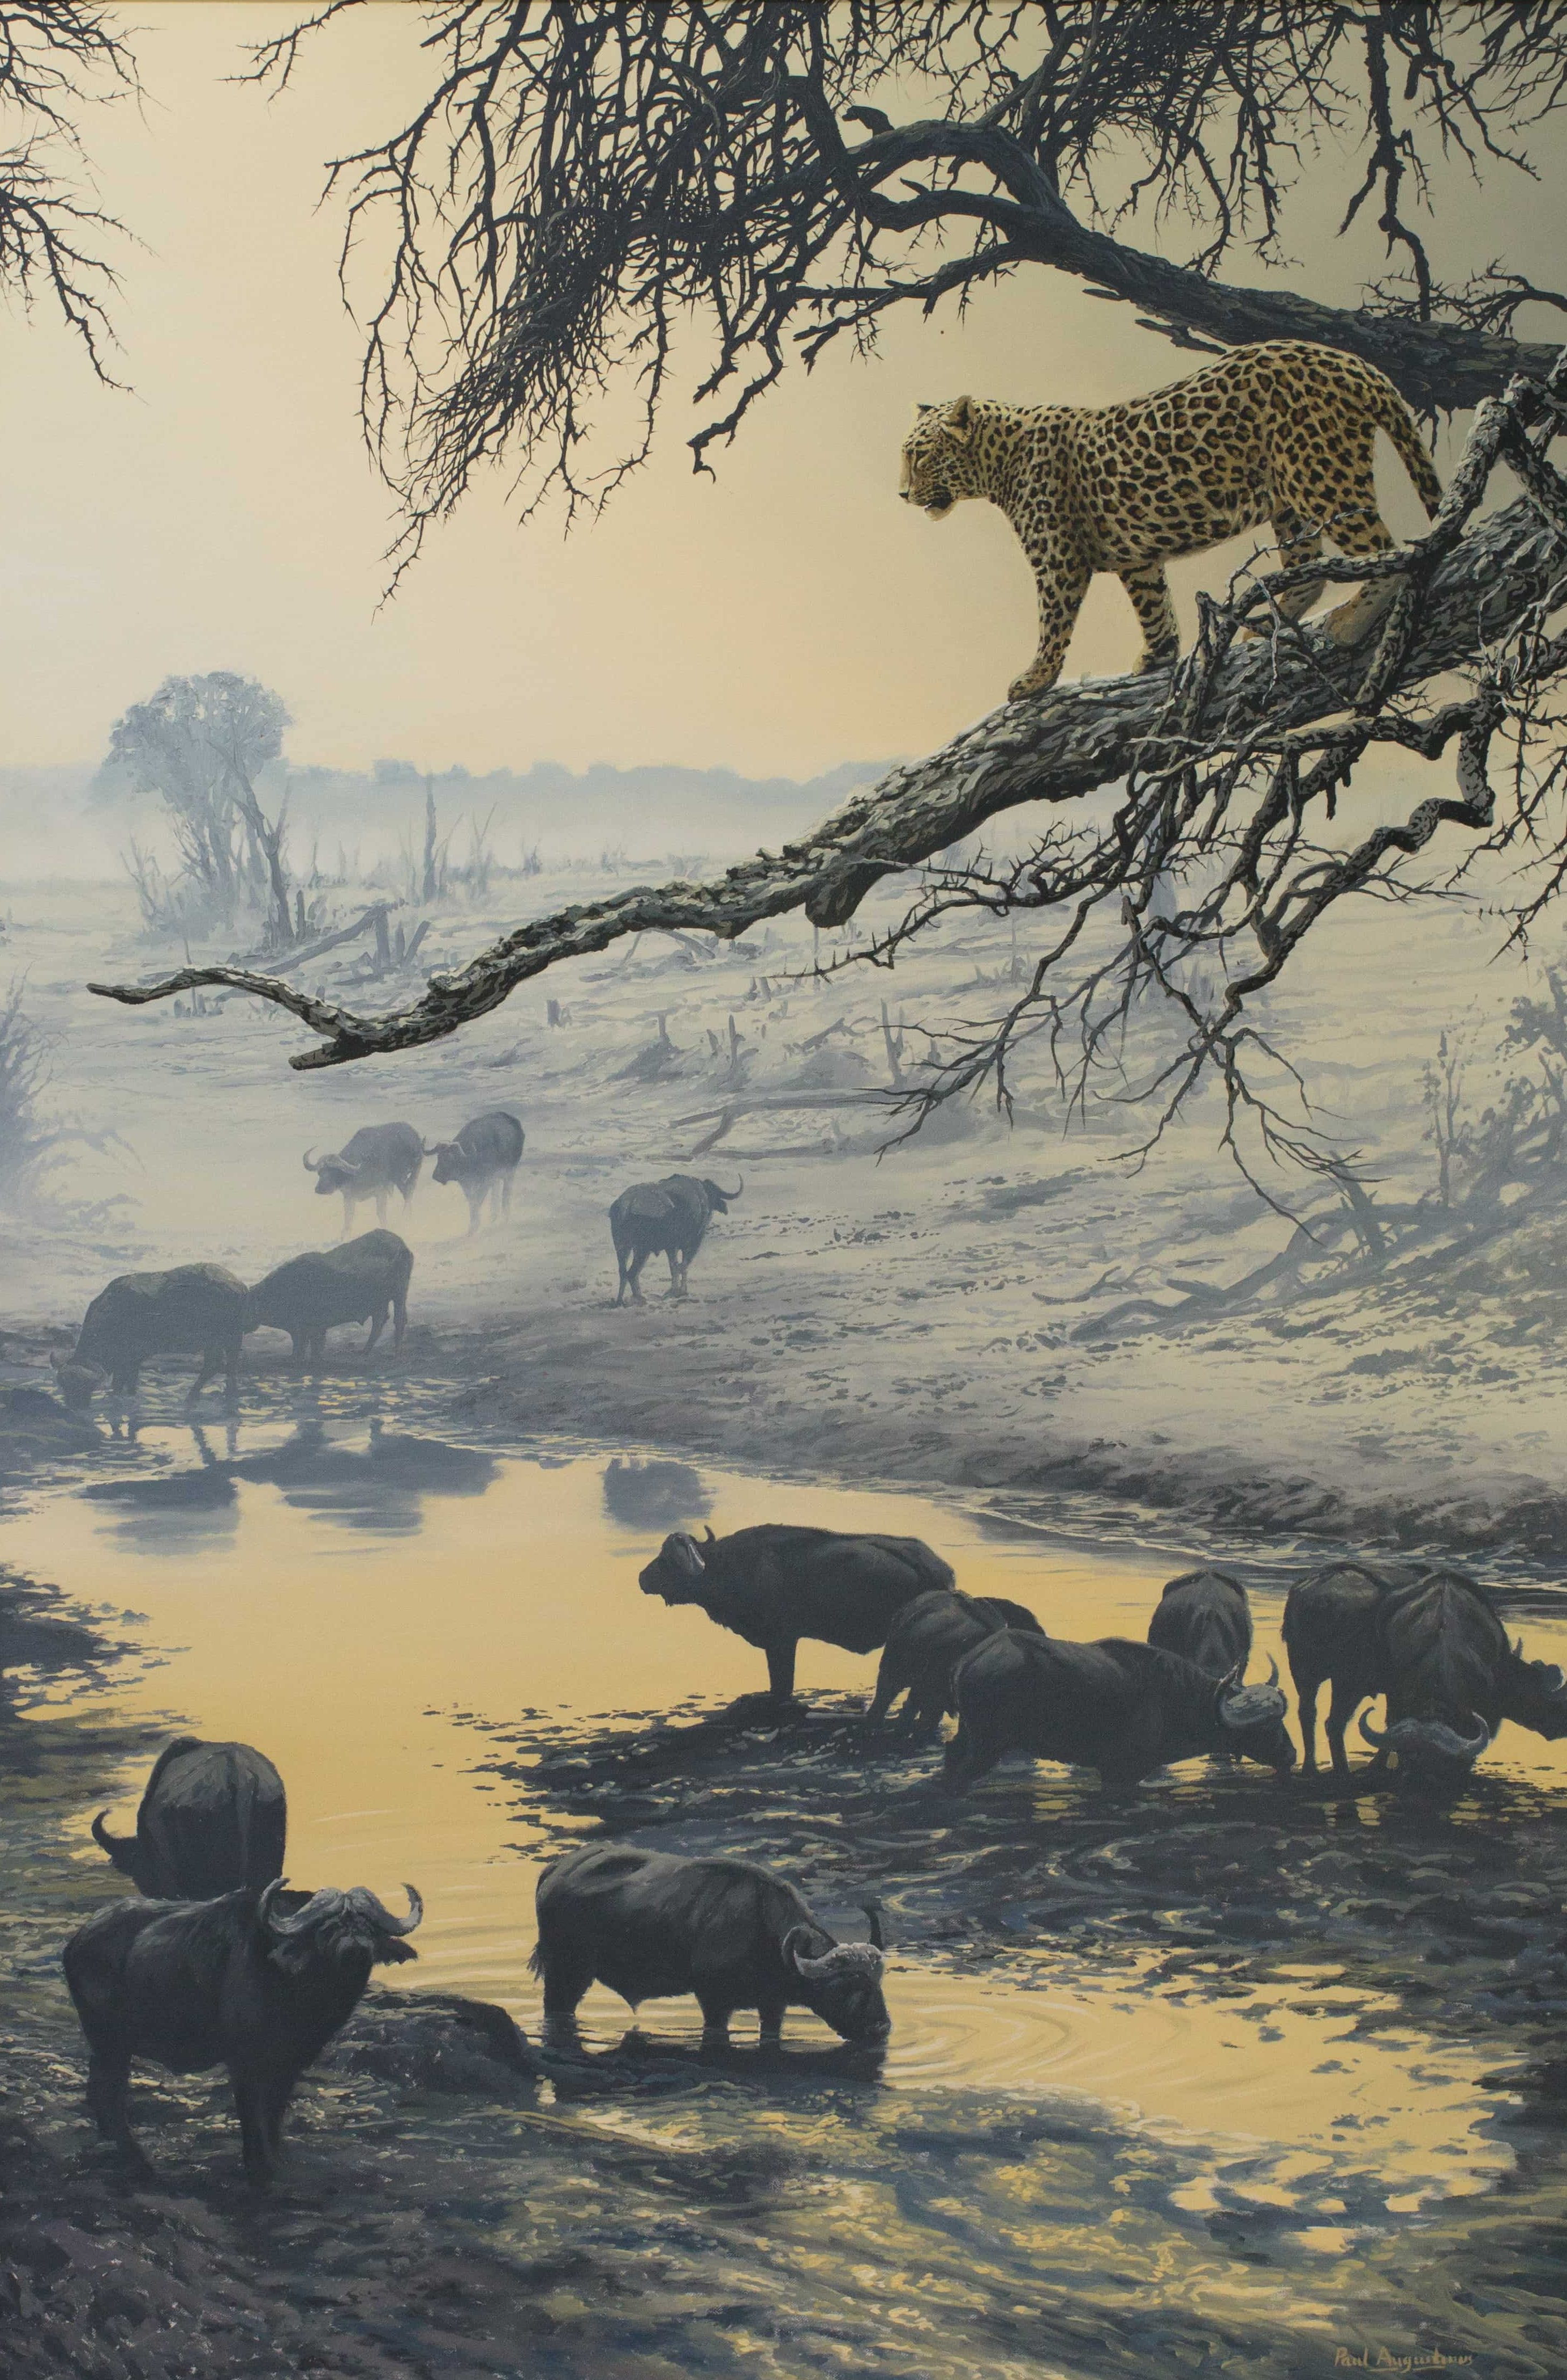 Leopard on Buffalo - 48x32